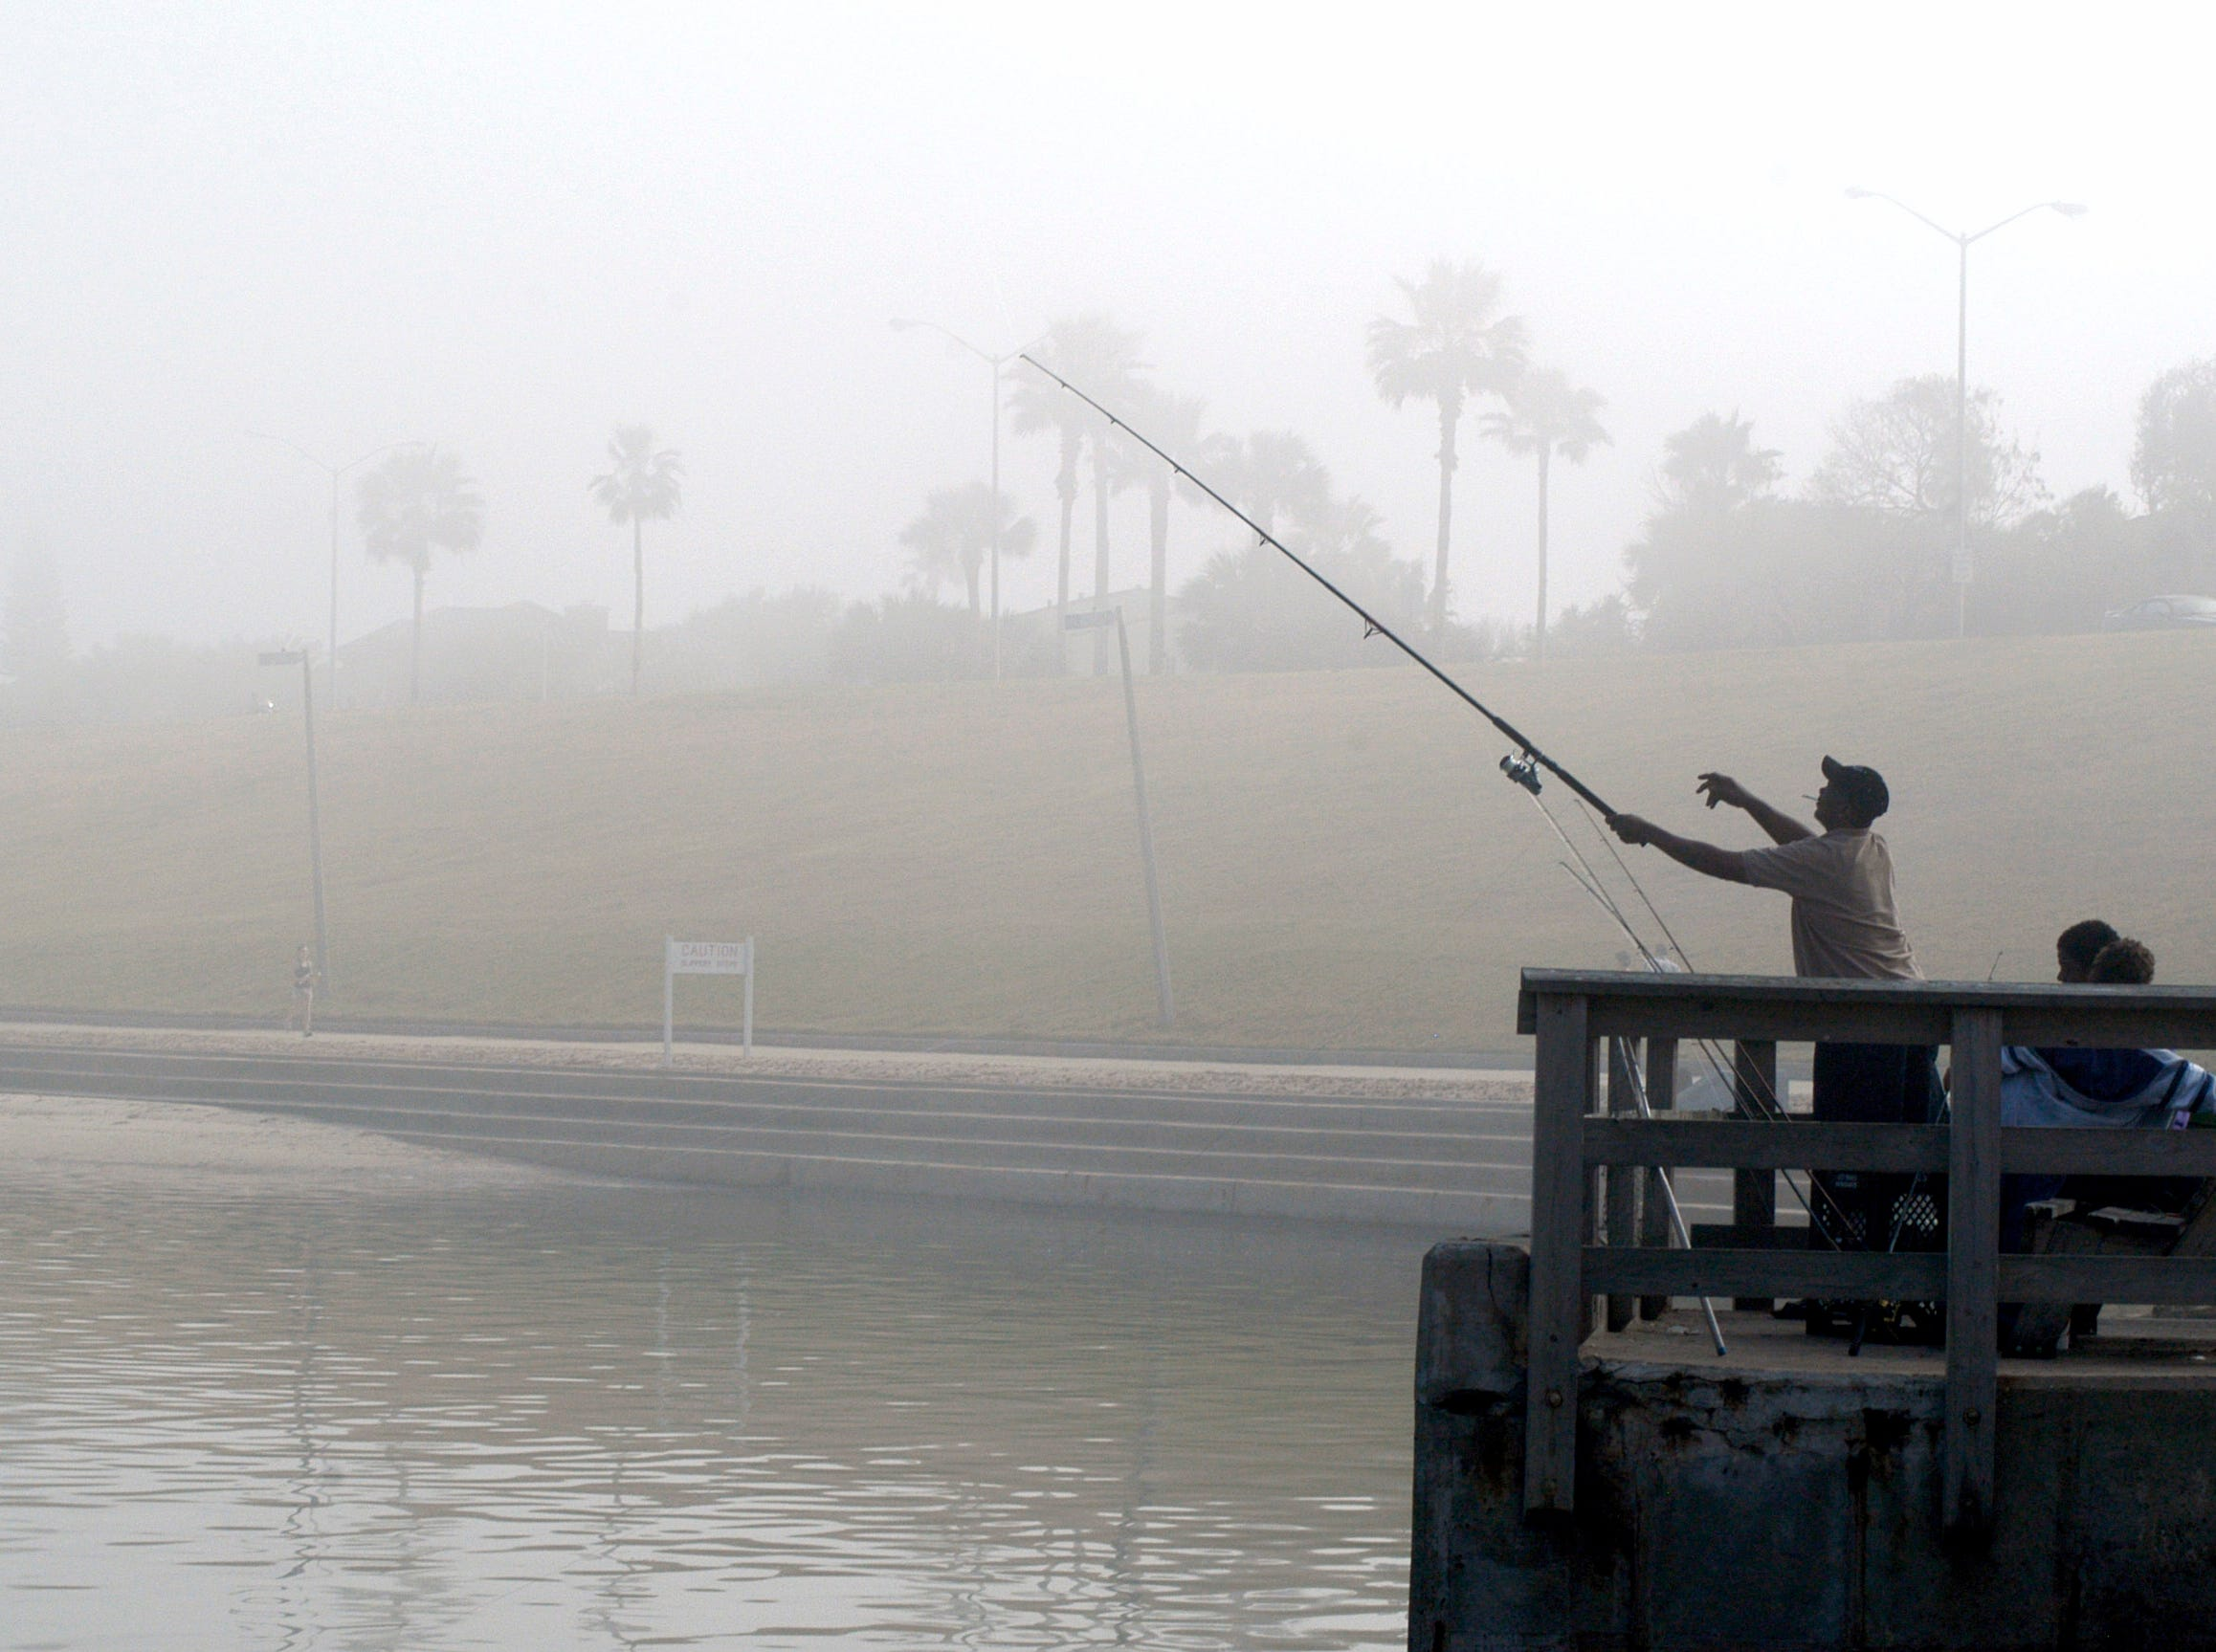 Fisherman cast their lines off the Cole Park pier on Dec. 25, 2008 depsite the heavy fog.